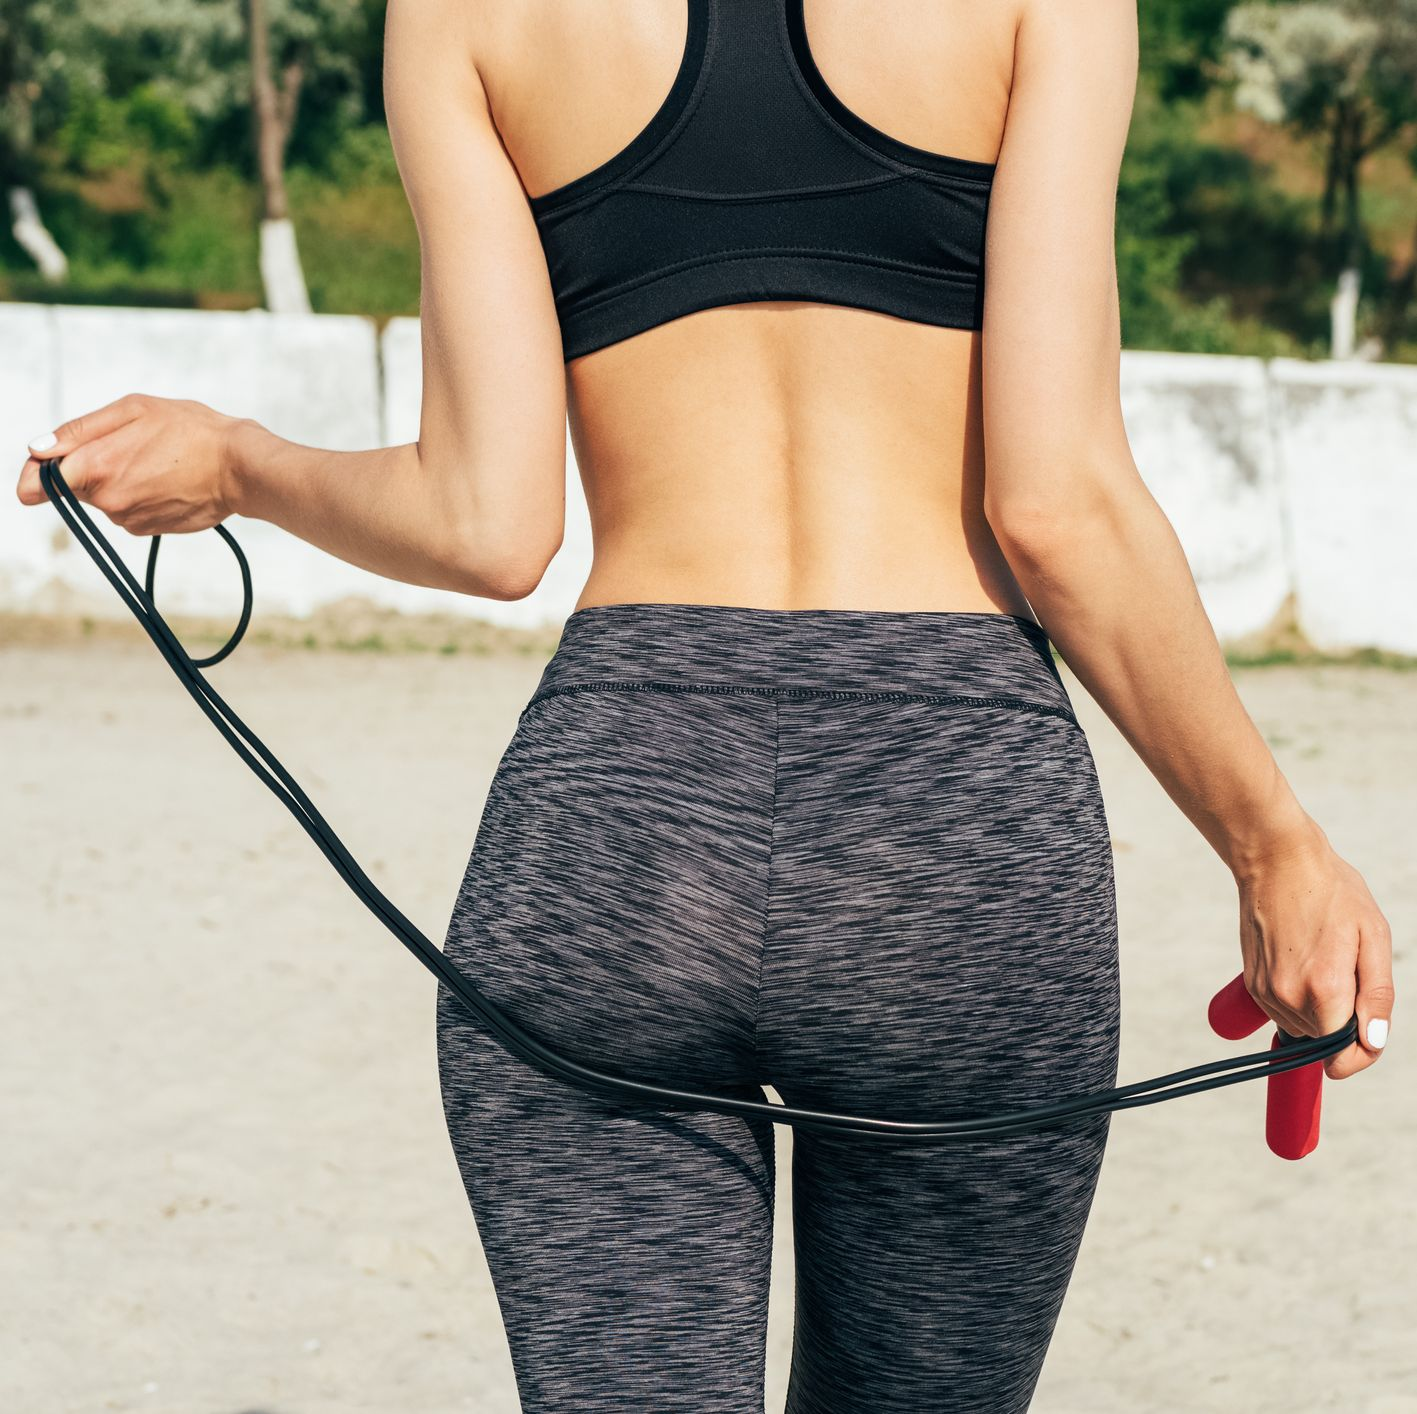 5 Ways To Get Rid Of Butt Acne